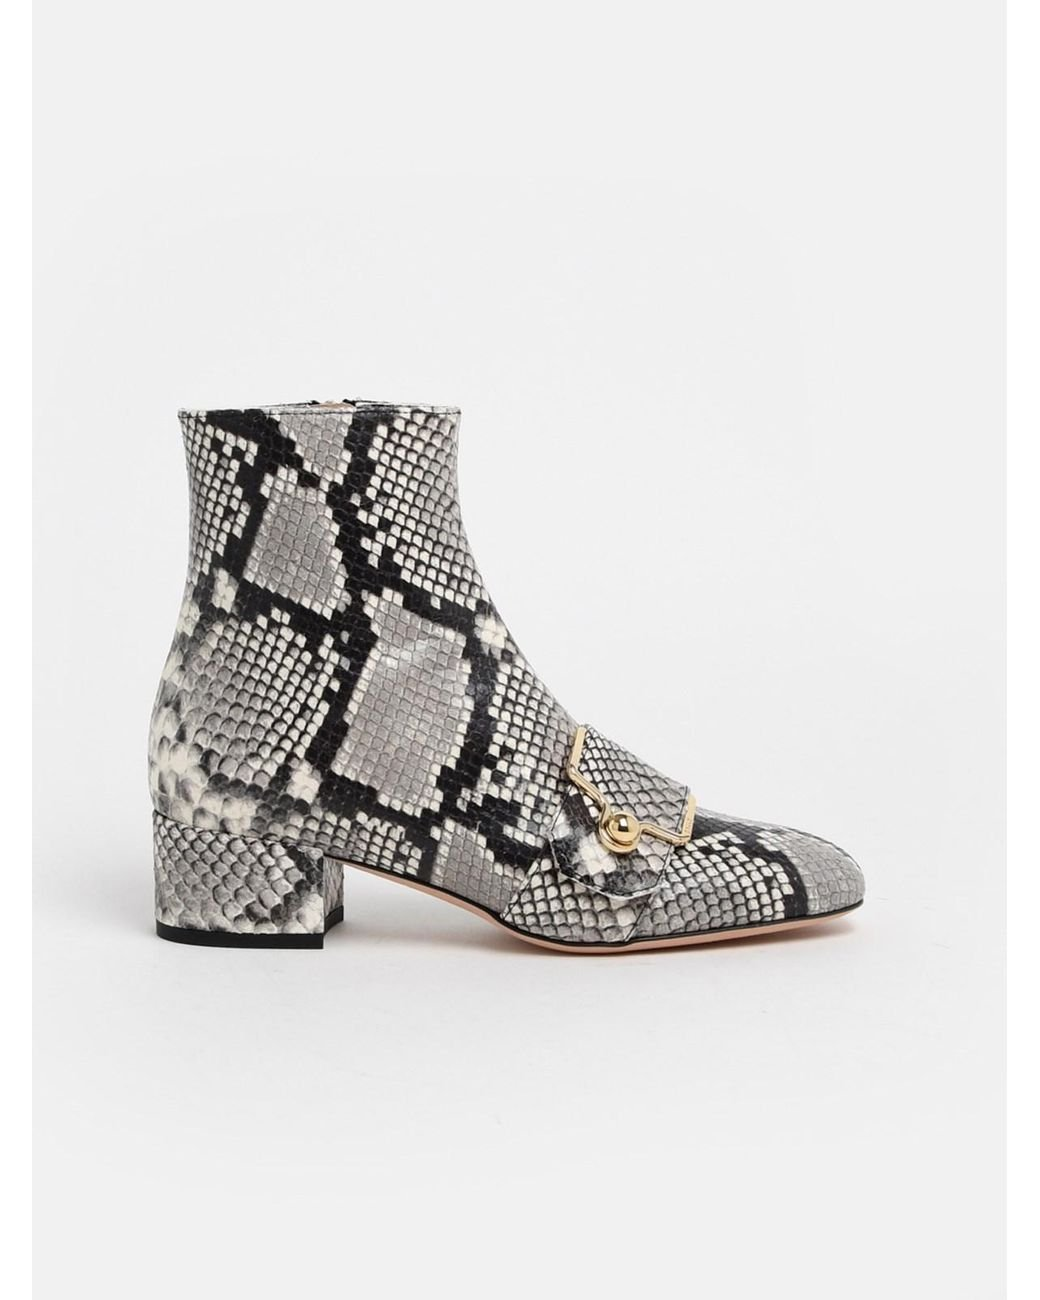 Snake print MAGGYE Ankle Boots